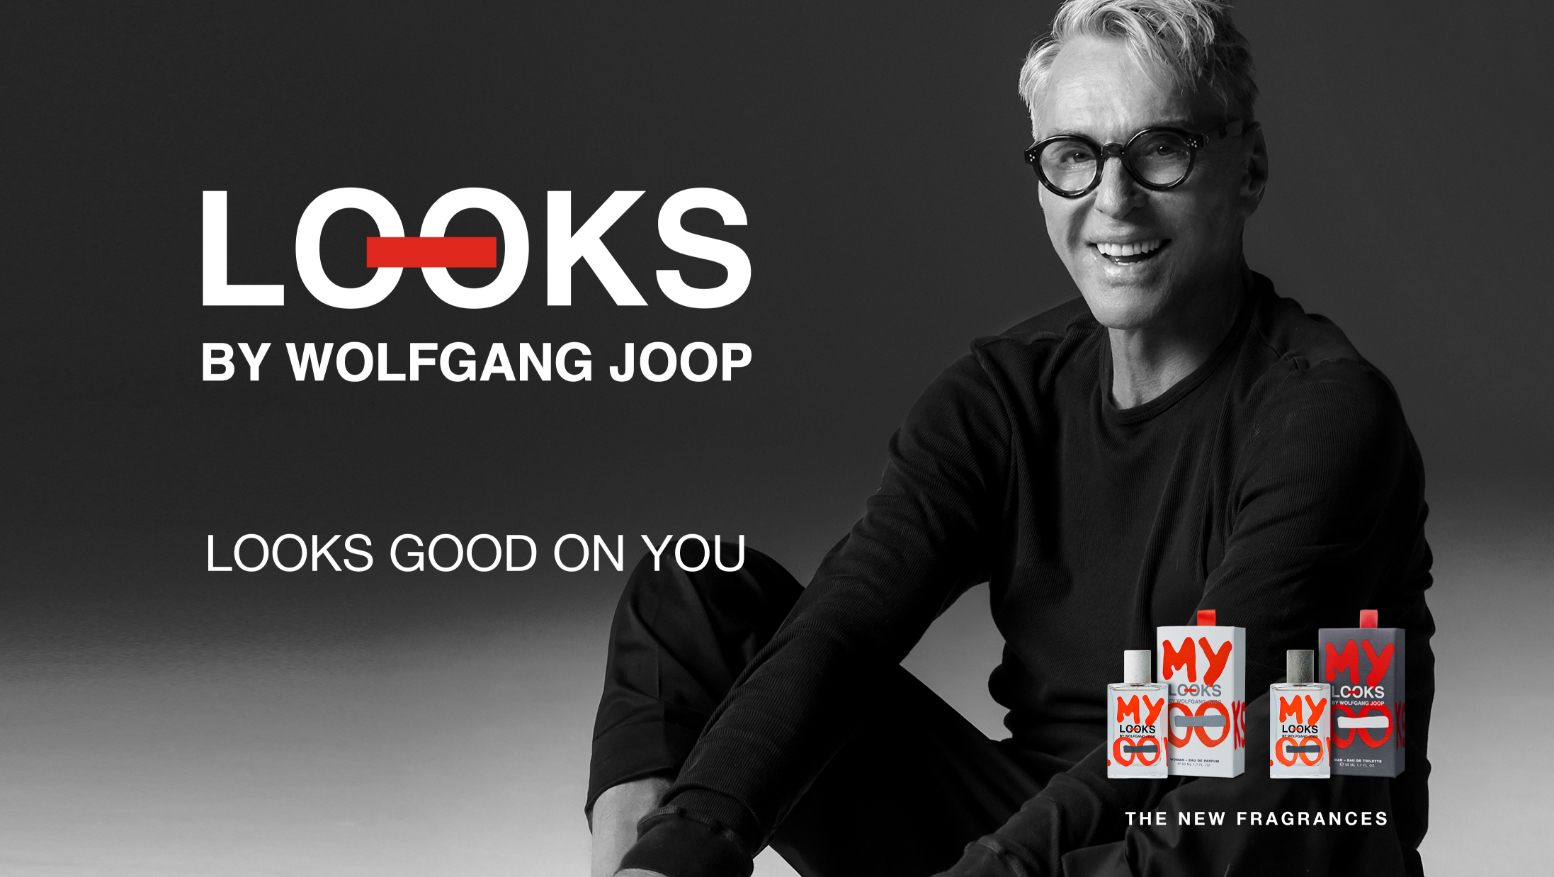 Looks by Wolfgang Joop: MY LOOKS, First Two Fragrances ~ New Fragrances